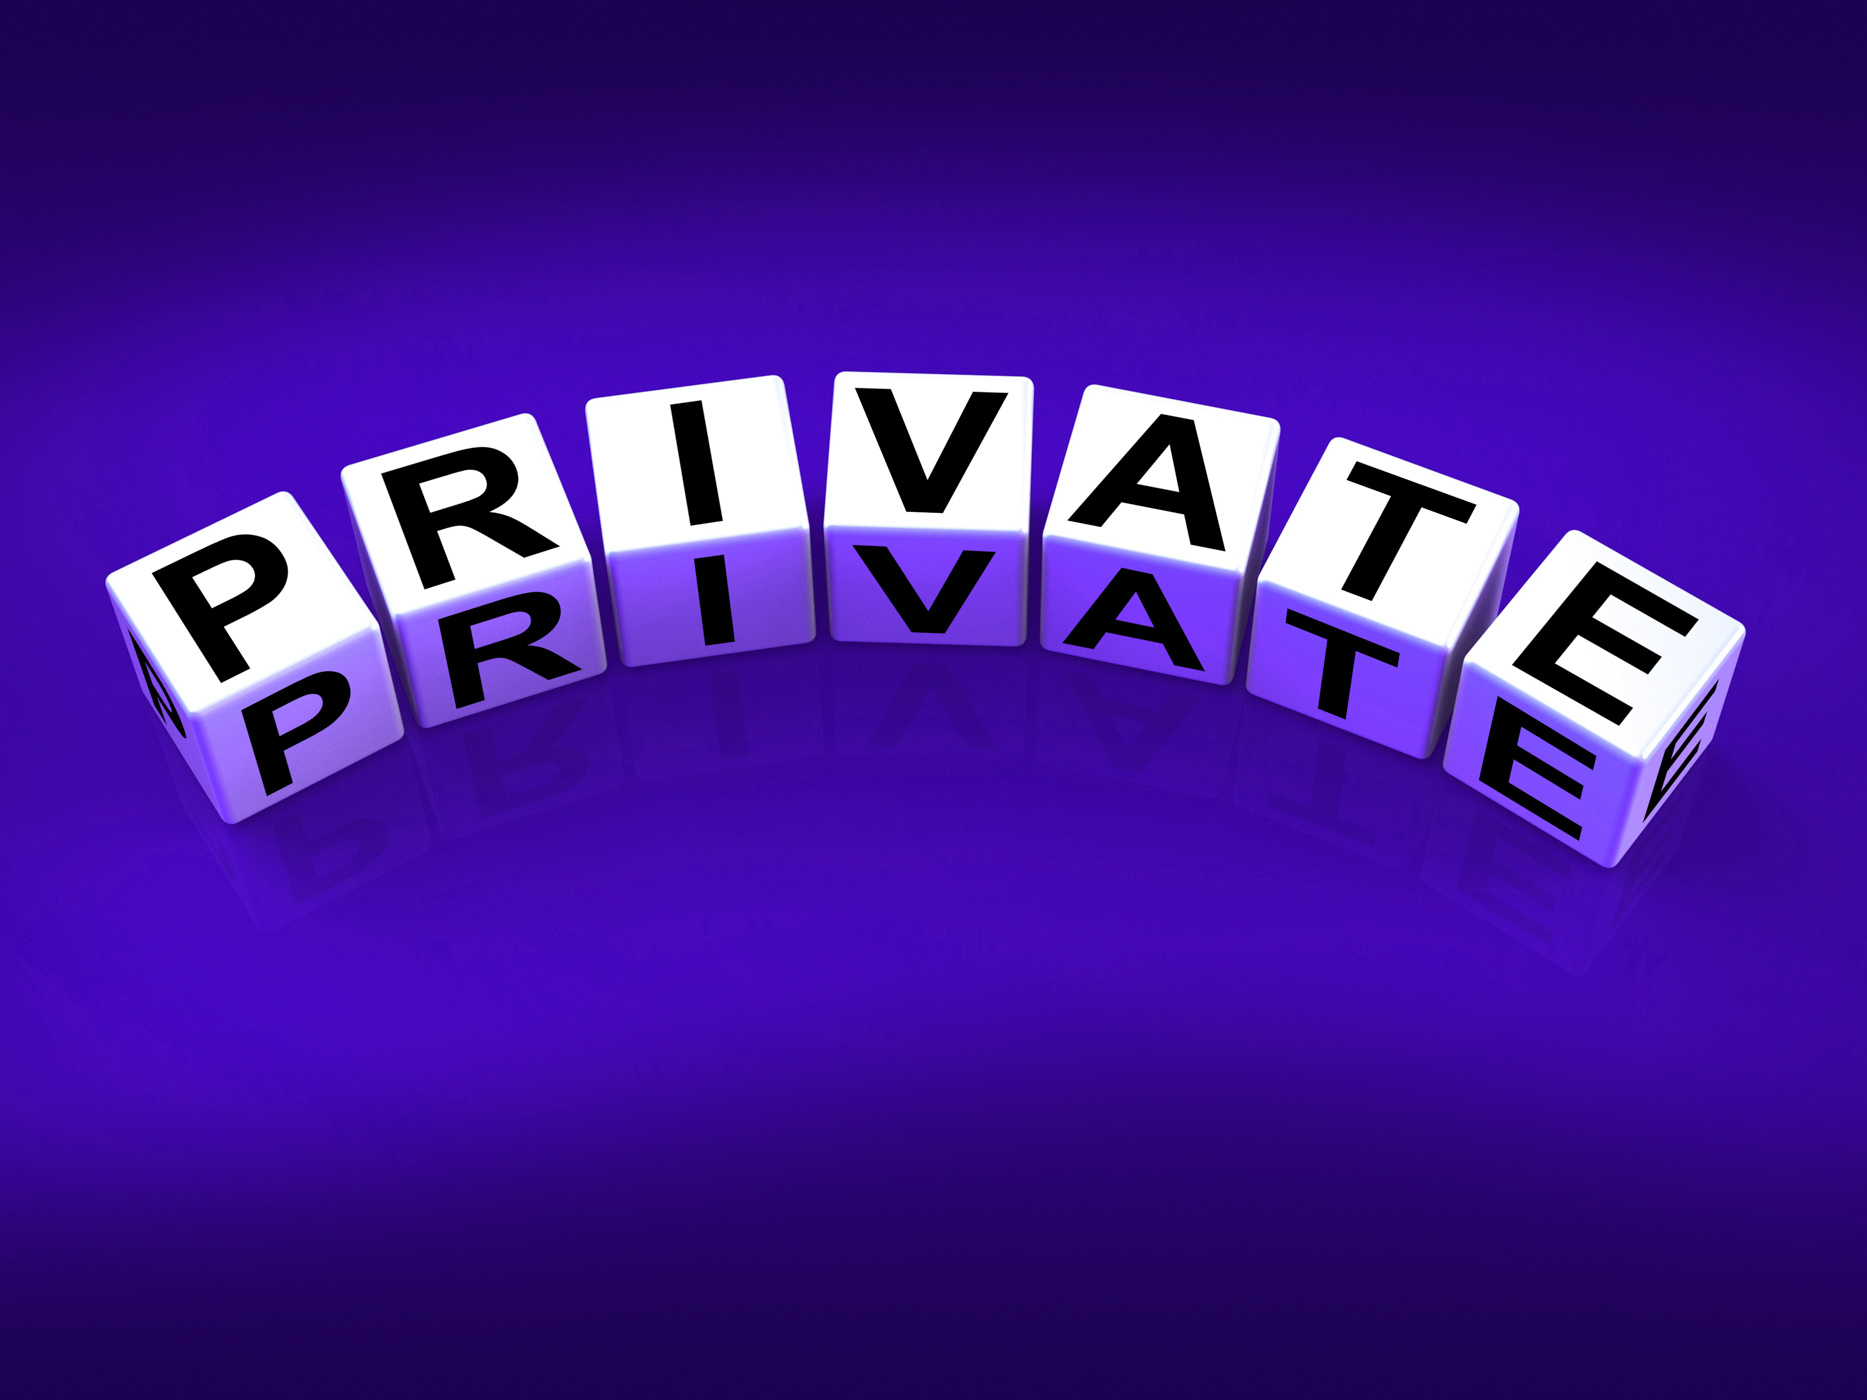 Private blocks refer to confidentiality exclusively and privacy photo